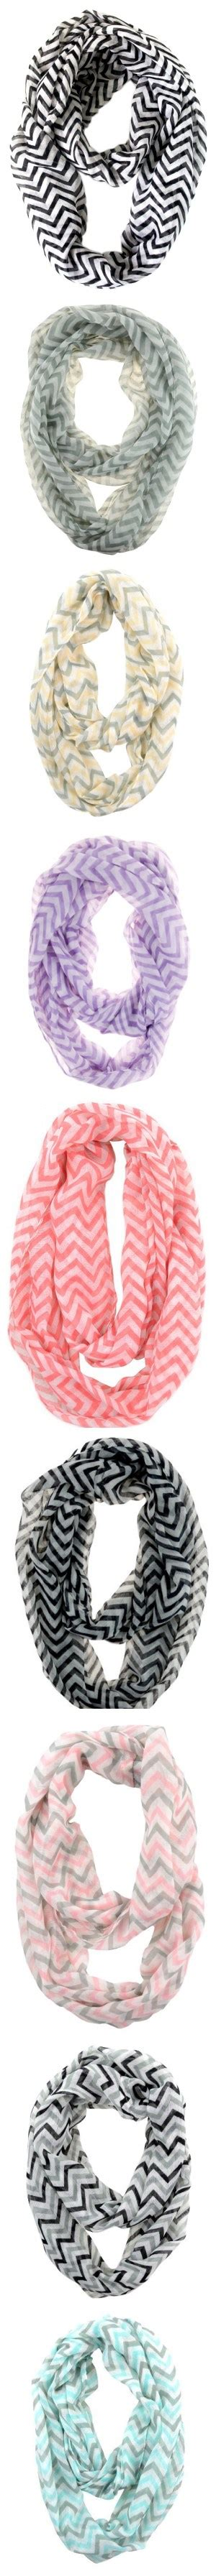 best selling scarves on which one do you like